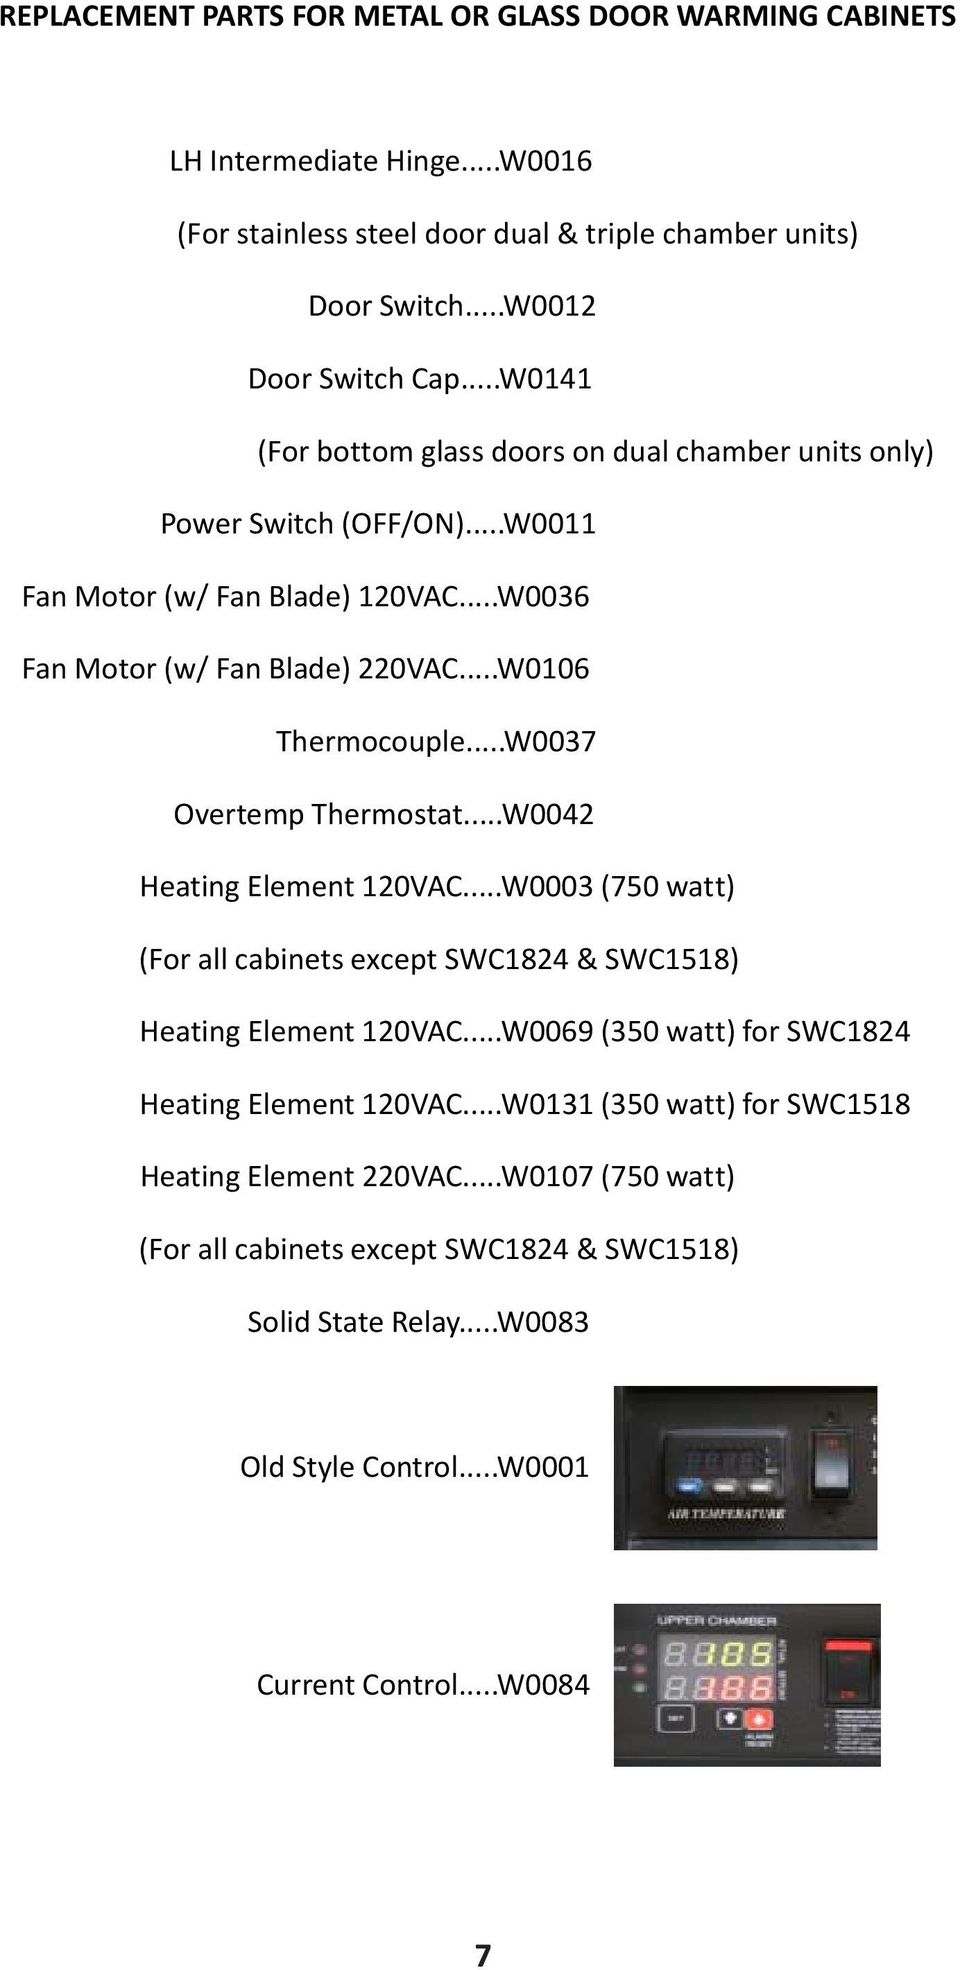 ..W0037 Overtemp Thermostat...W0042 Heating Element 120VAC...W0003 (750 watt) (For all cabinets except SWC1824 & SWC1518) Heating Element 120VAC.